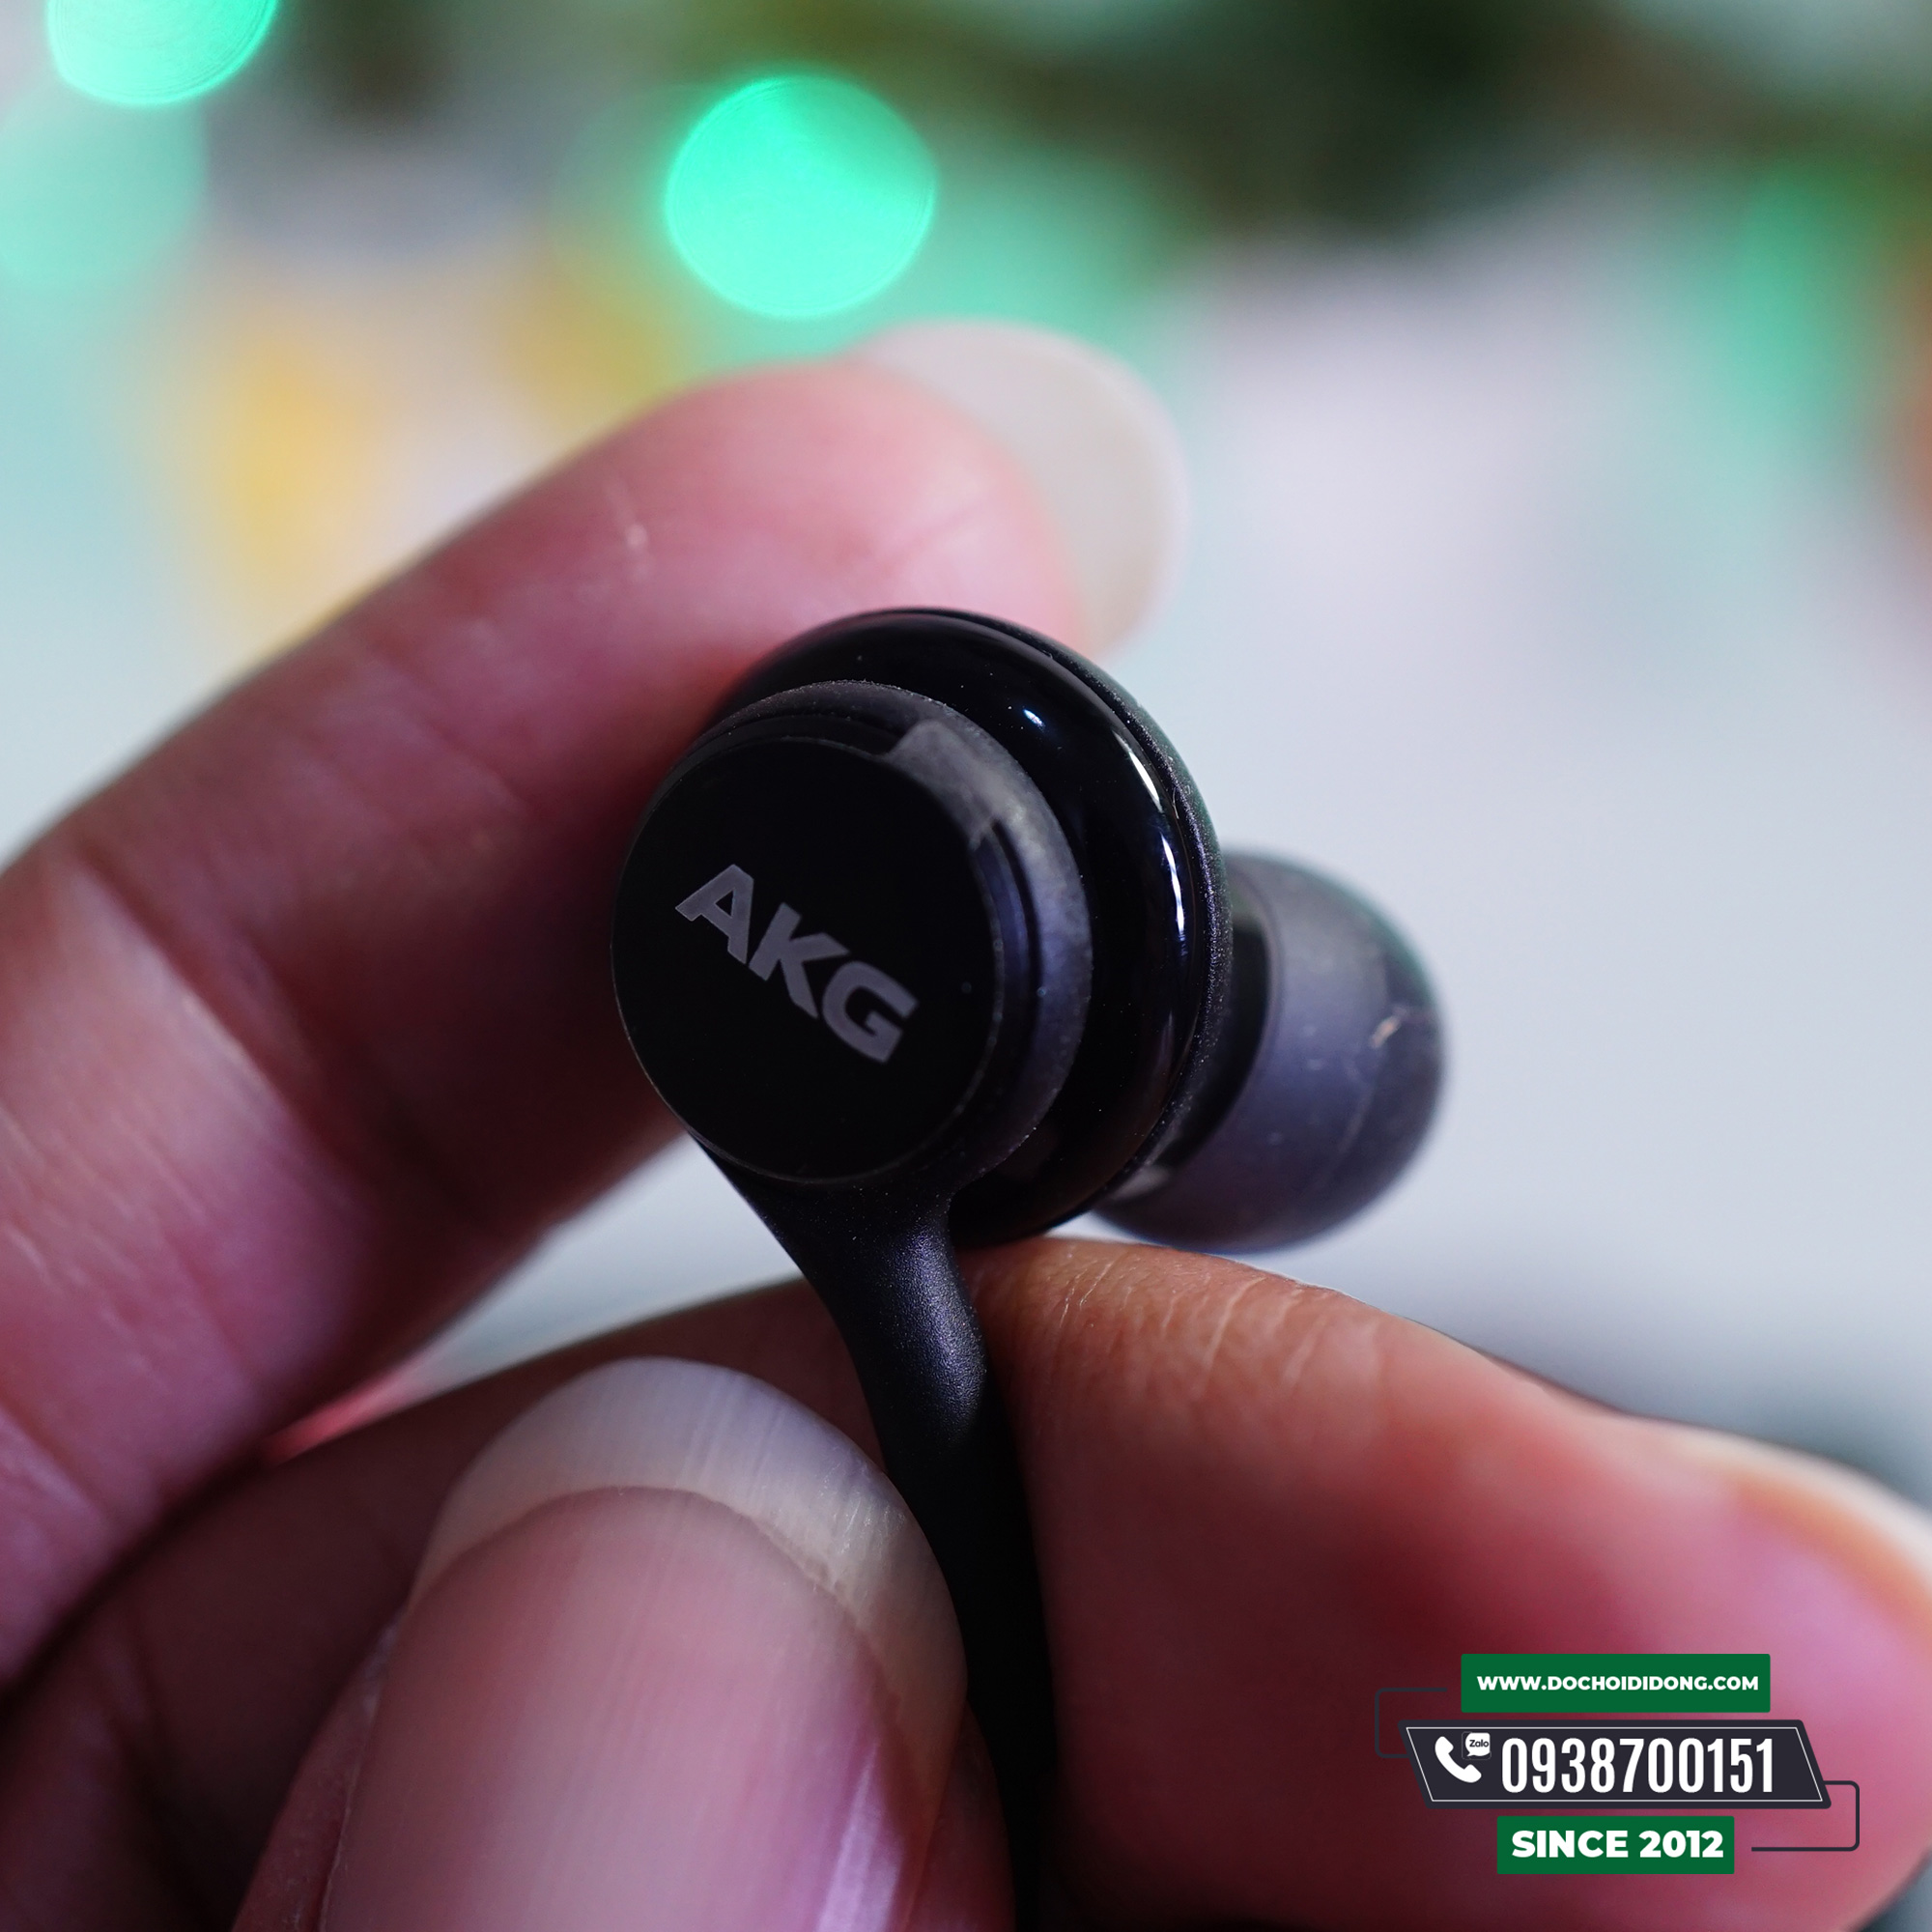 tai-nghe-type-c-samsung-akg-note-10-note-10-plus-chinh-hang